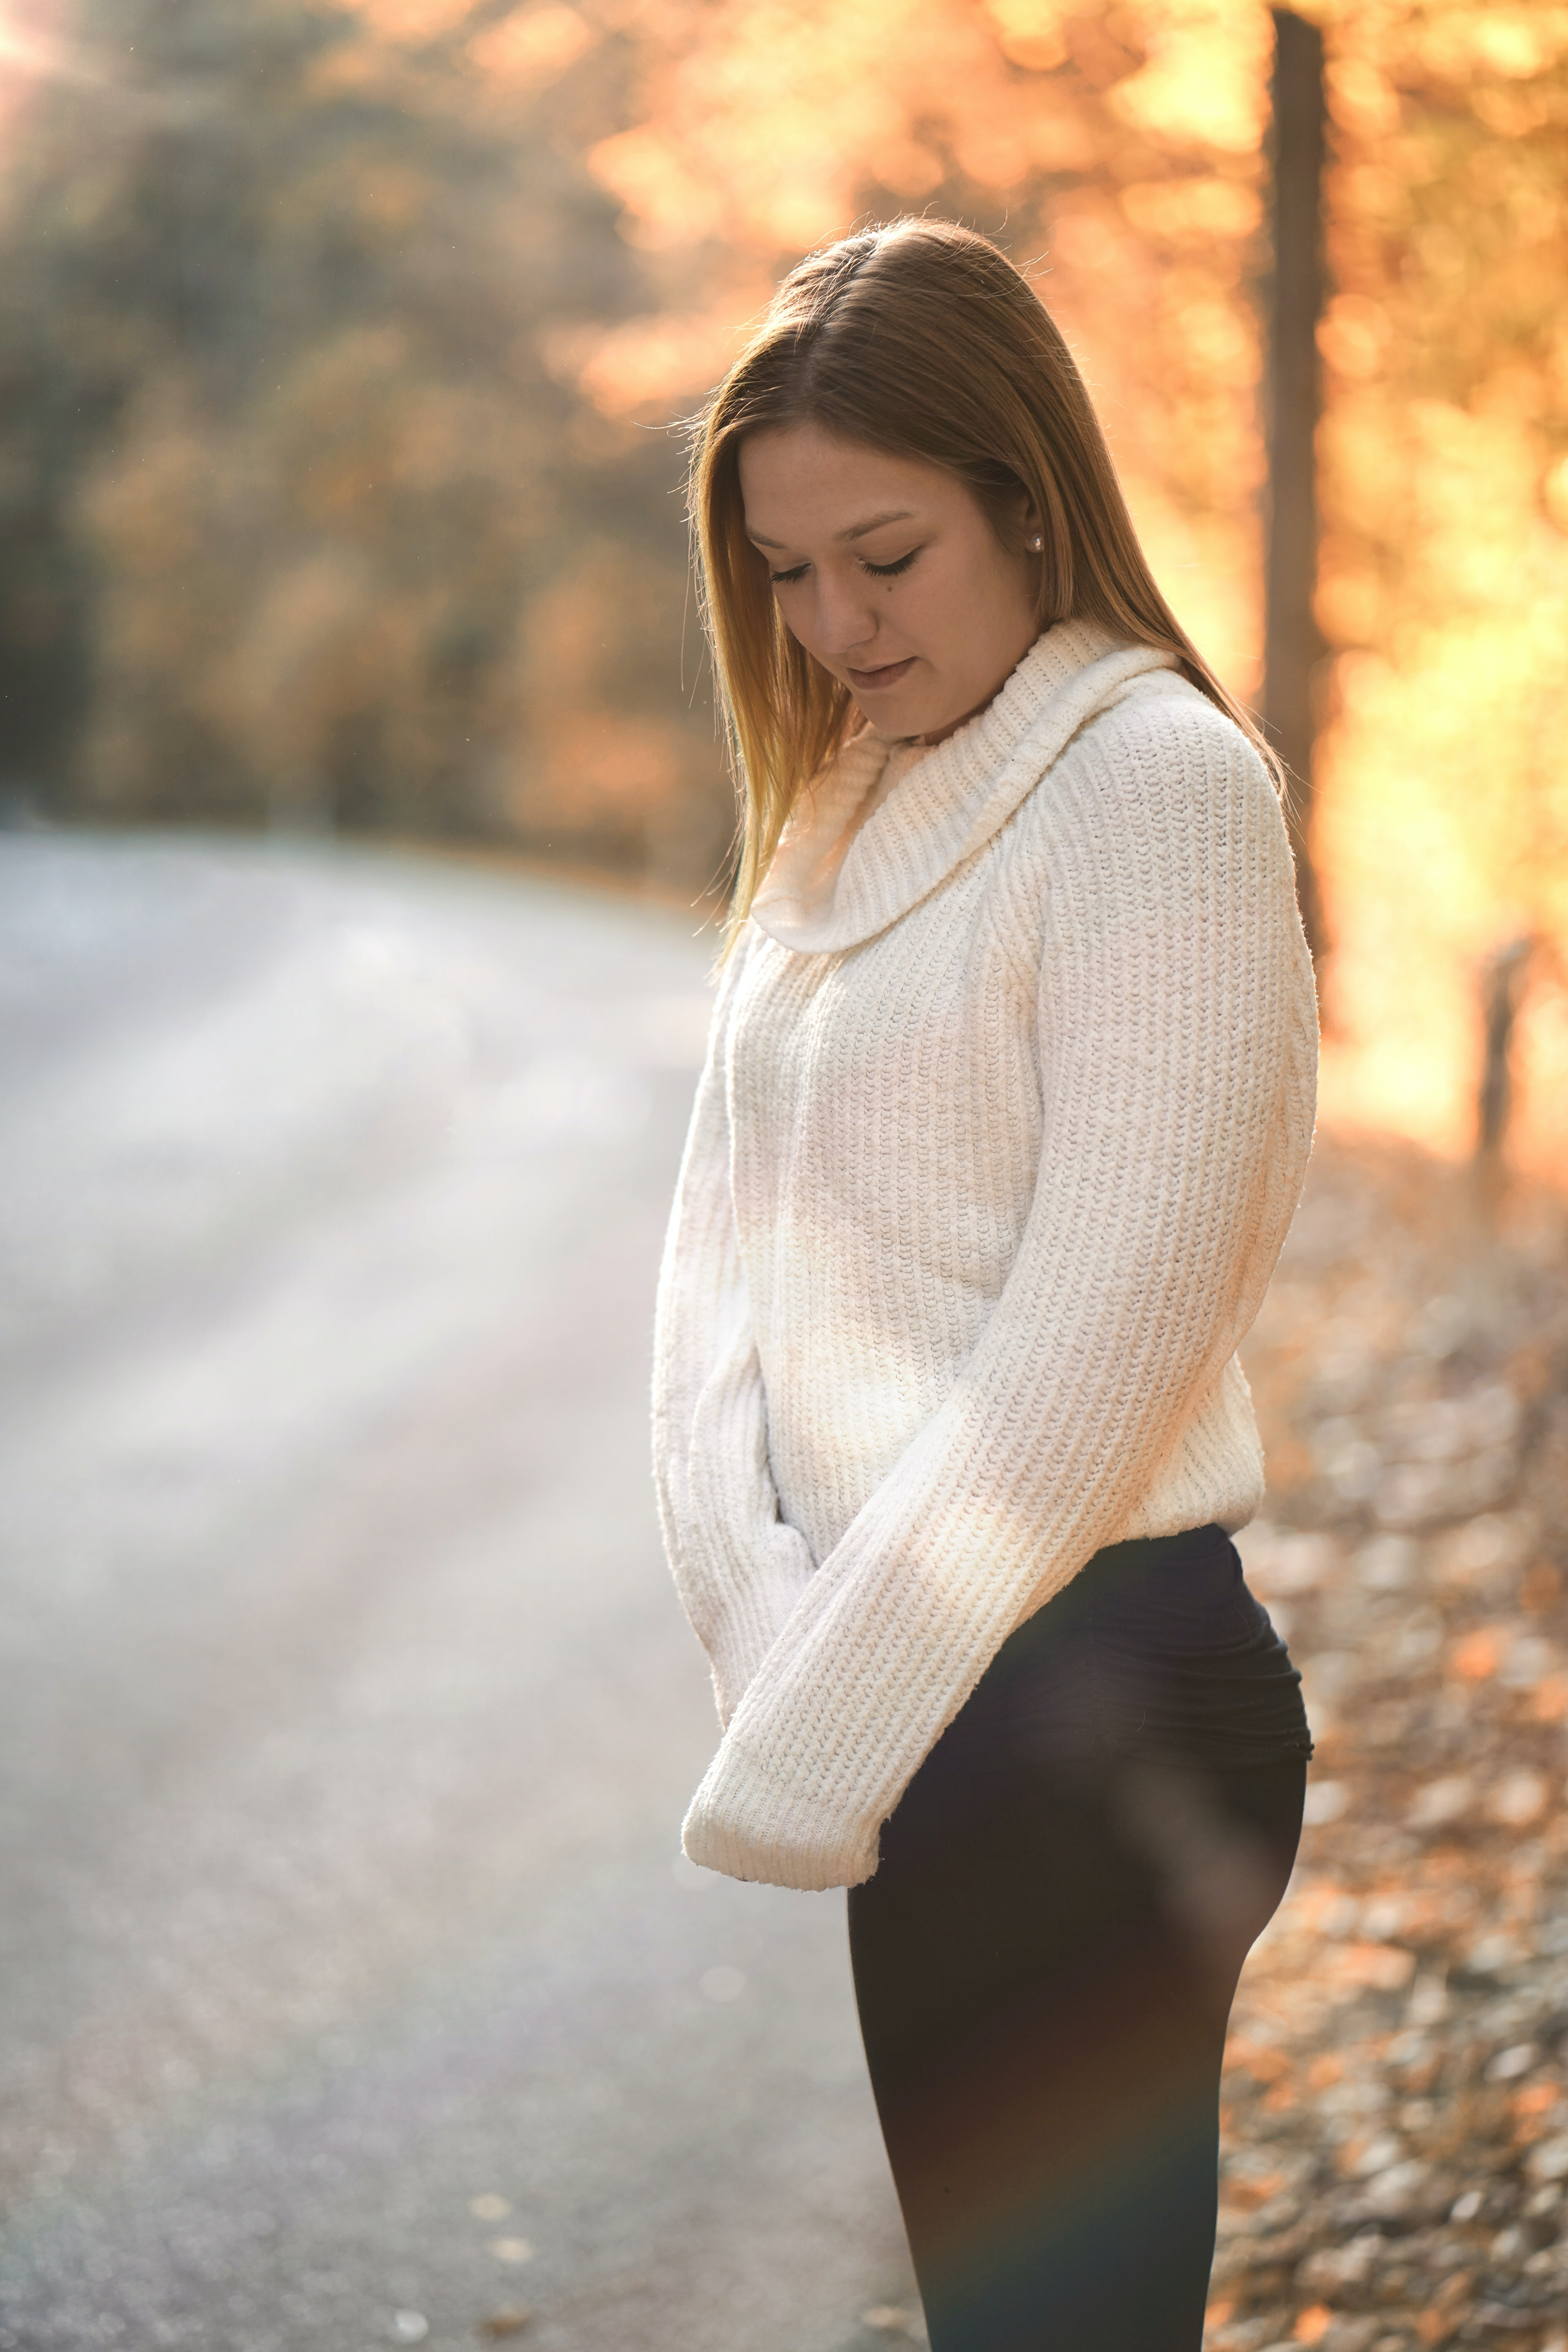 woman in white sweater standing outdoor